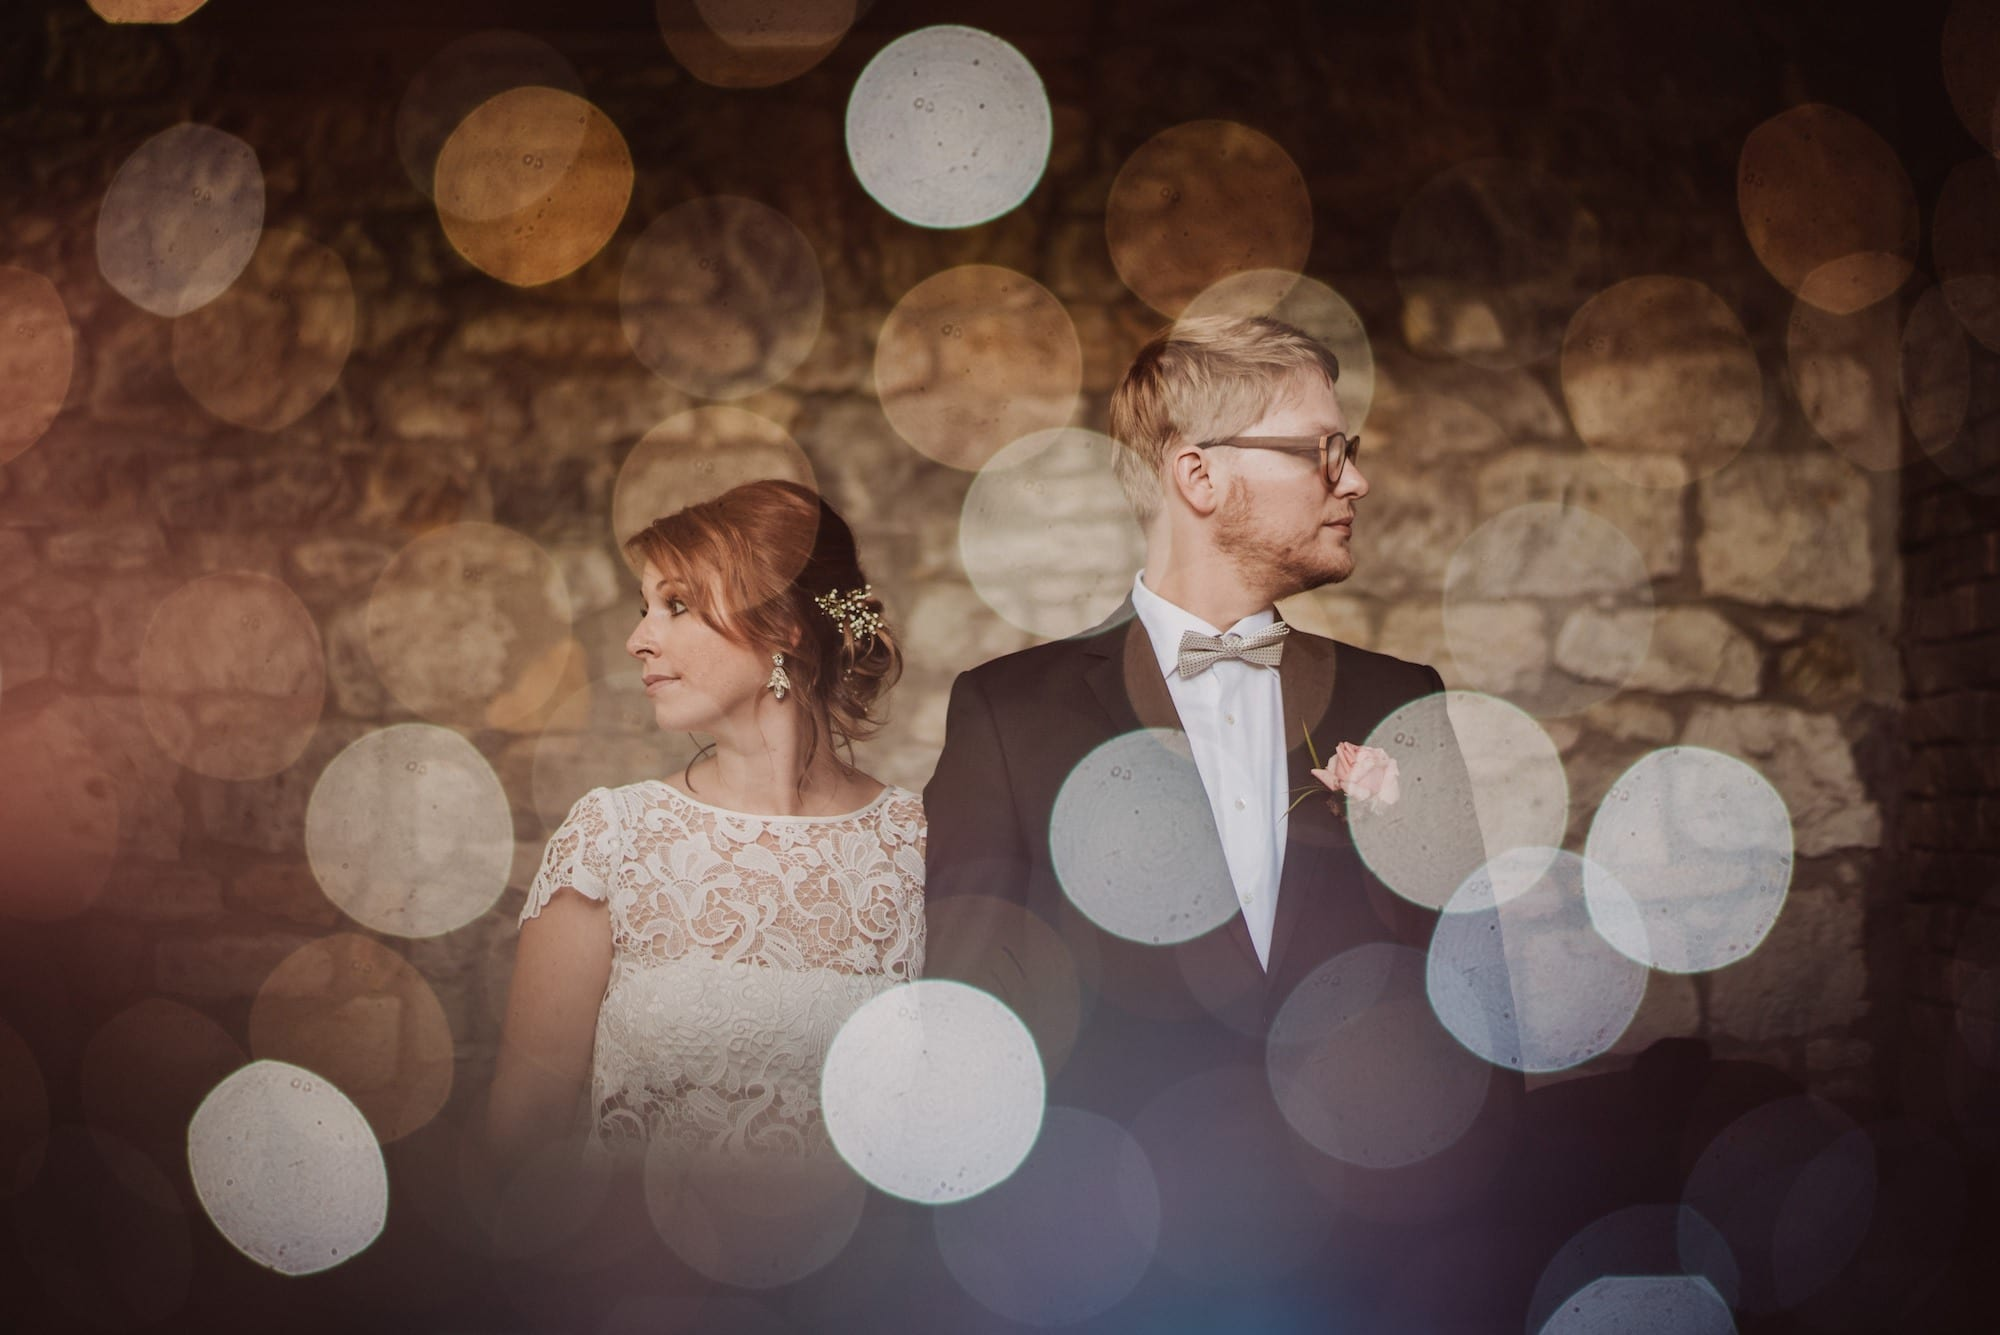 01 double Exposure Wedding photography light spots - Doppelbelichtungen in der Hochzeitsfotografie